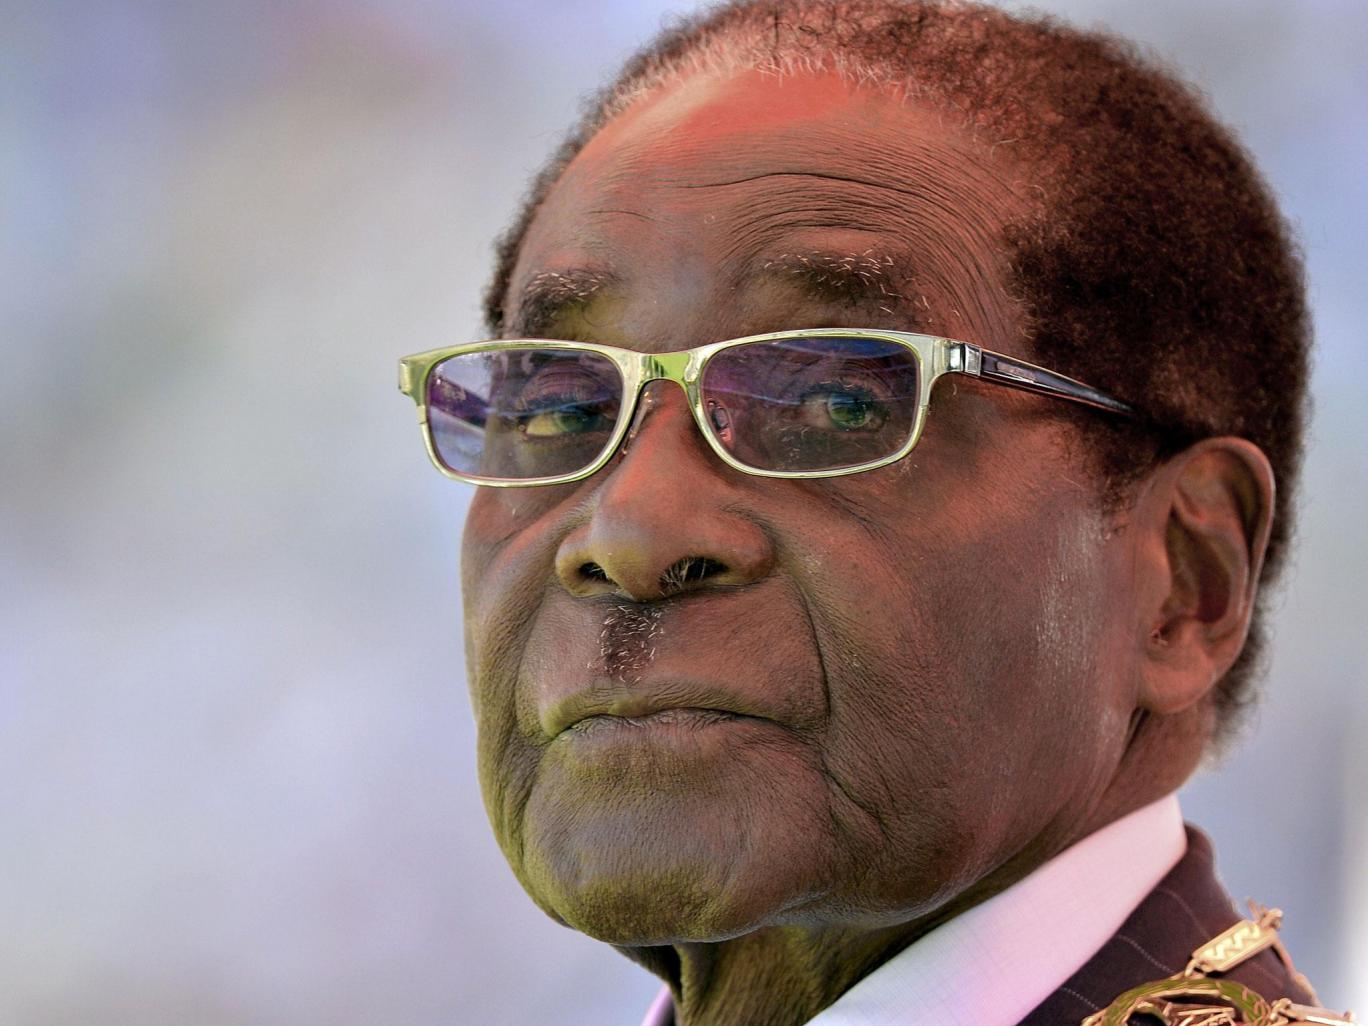 93-year-old Zimbabwe President declares 2018 Presidential candidate